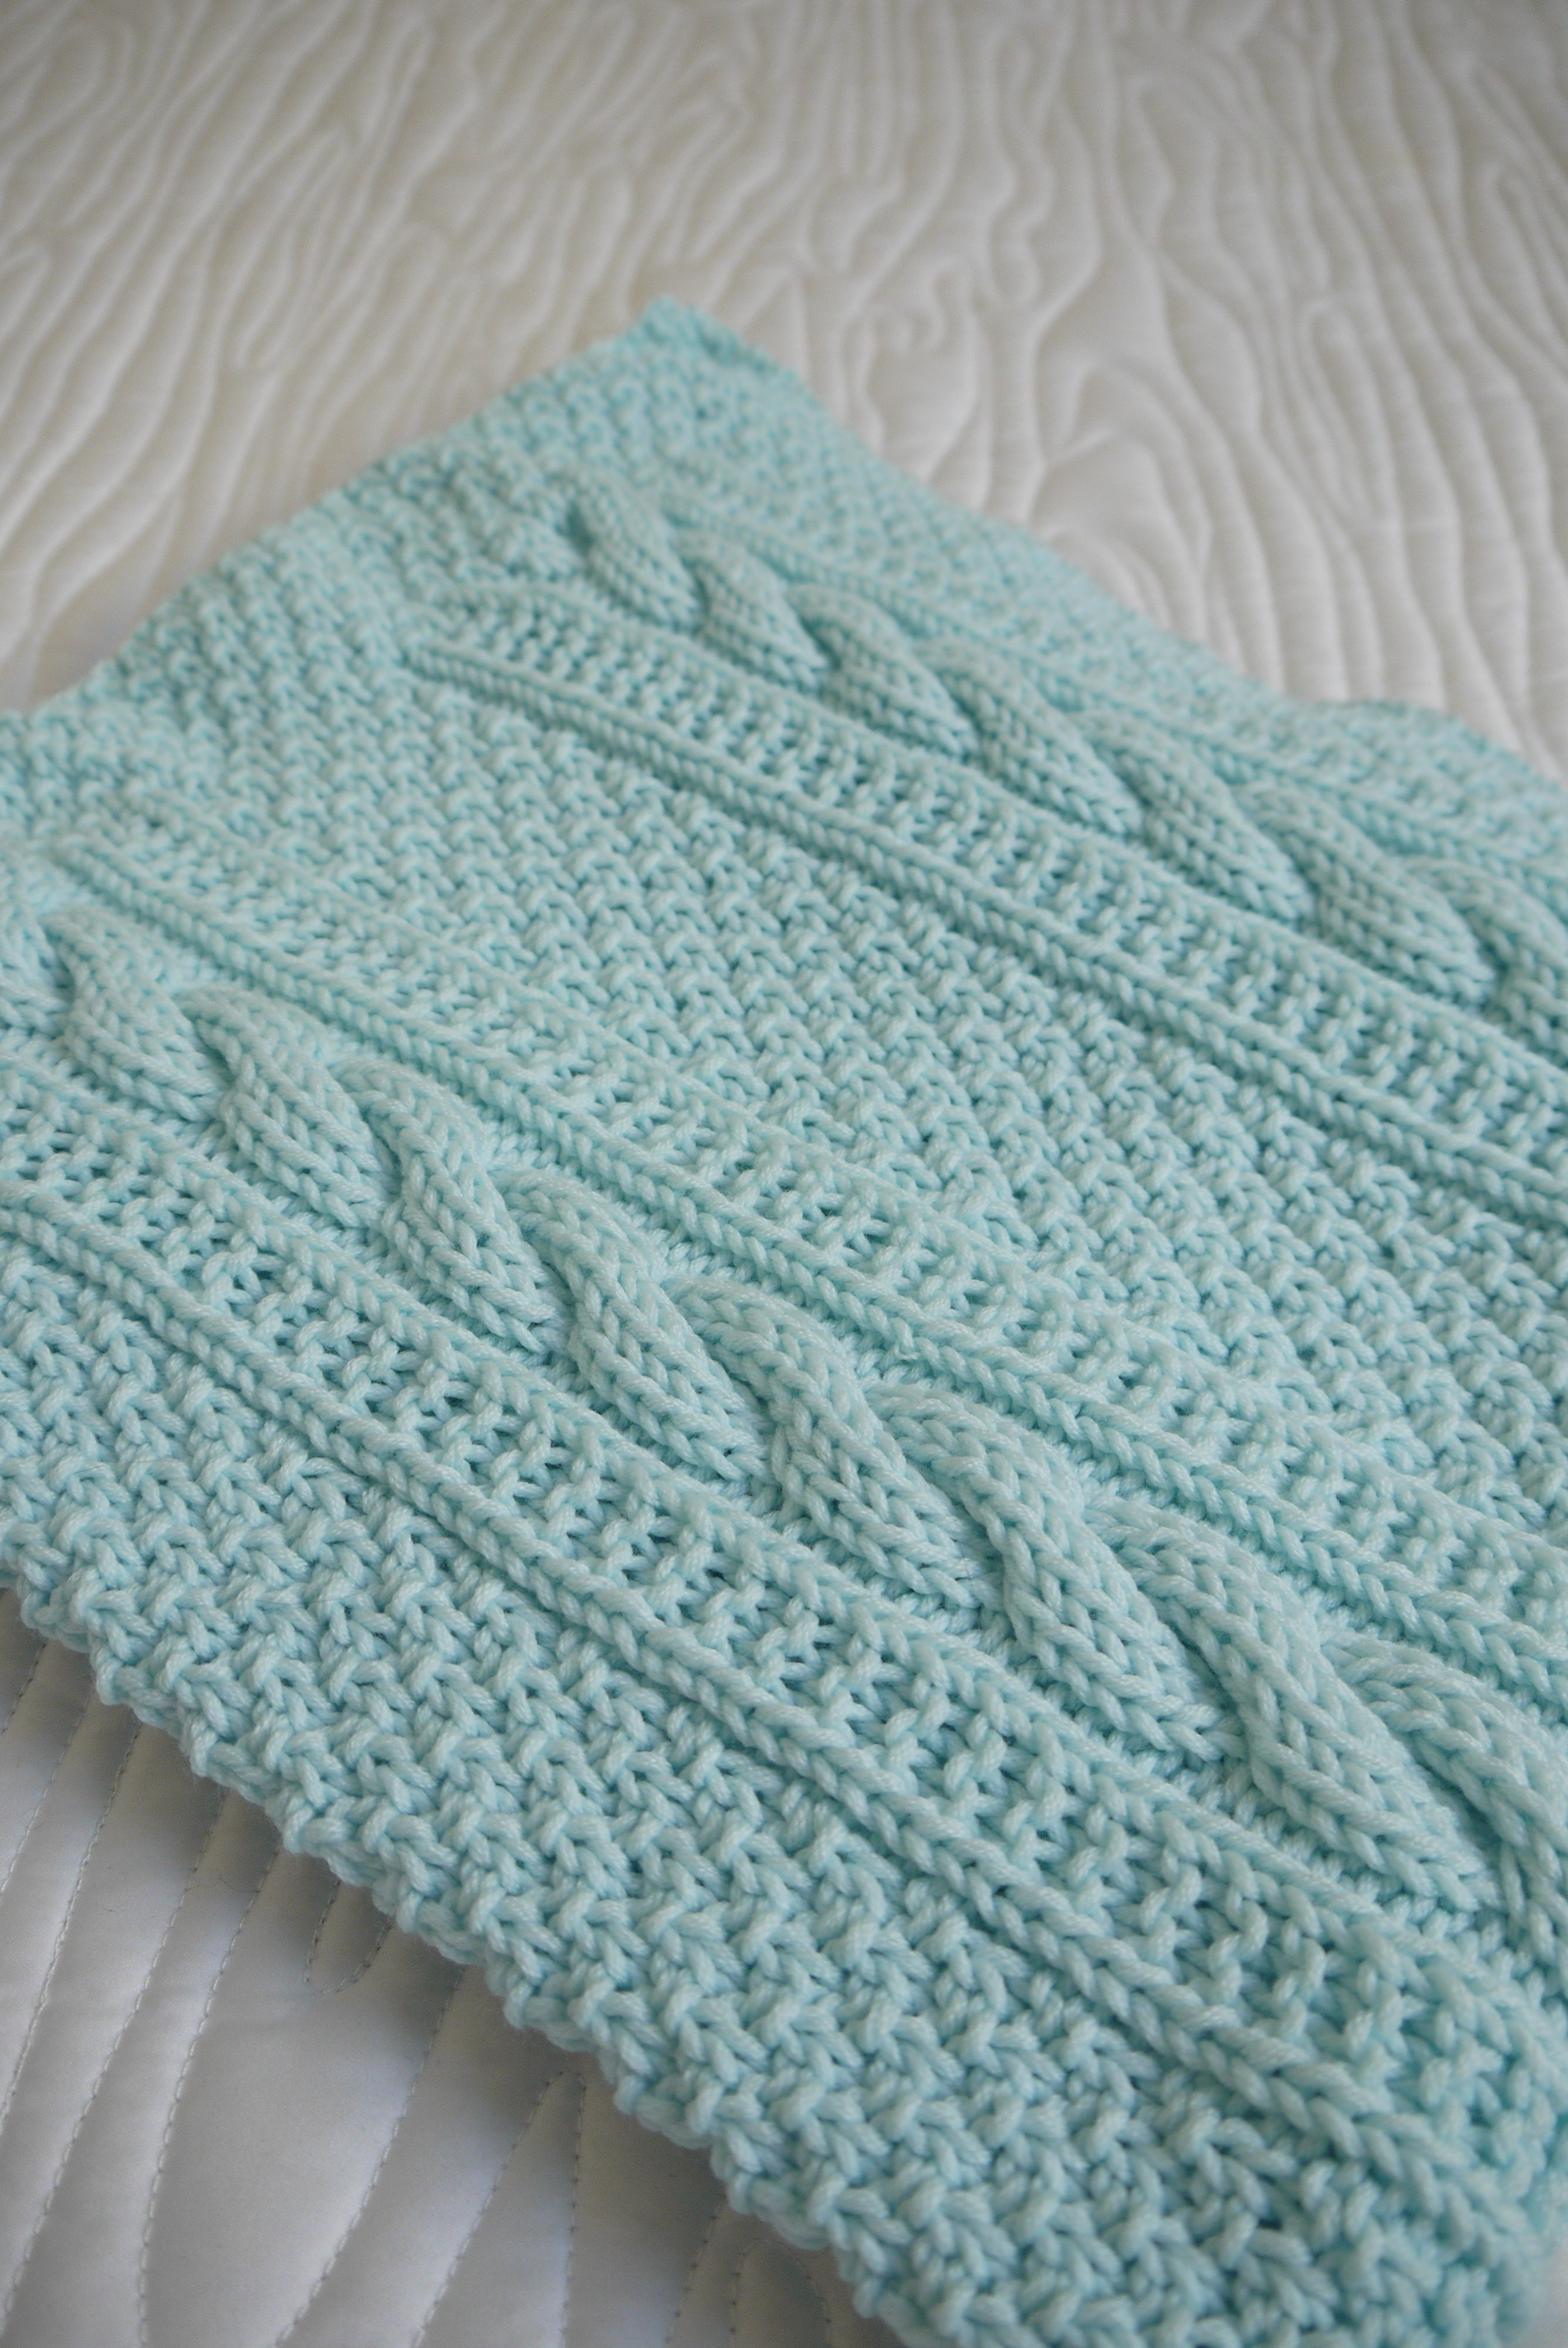 Free Knitting Patterns For Baby Blankets And Shawls My Printable - Free Printable Knitting Patterns For Baby Blankets